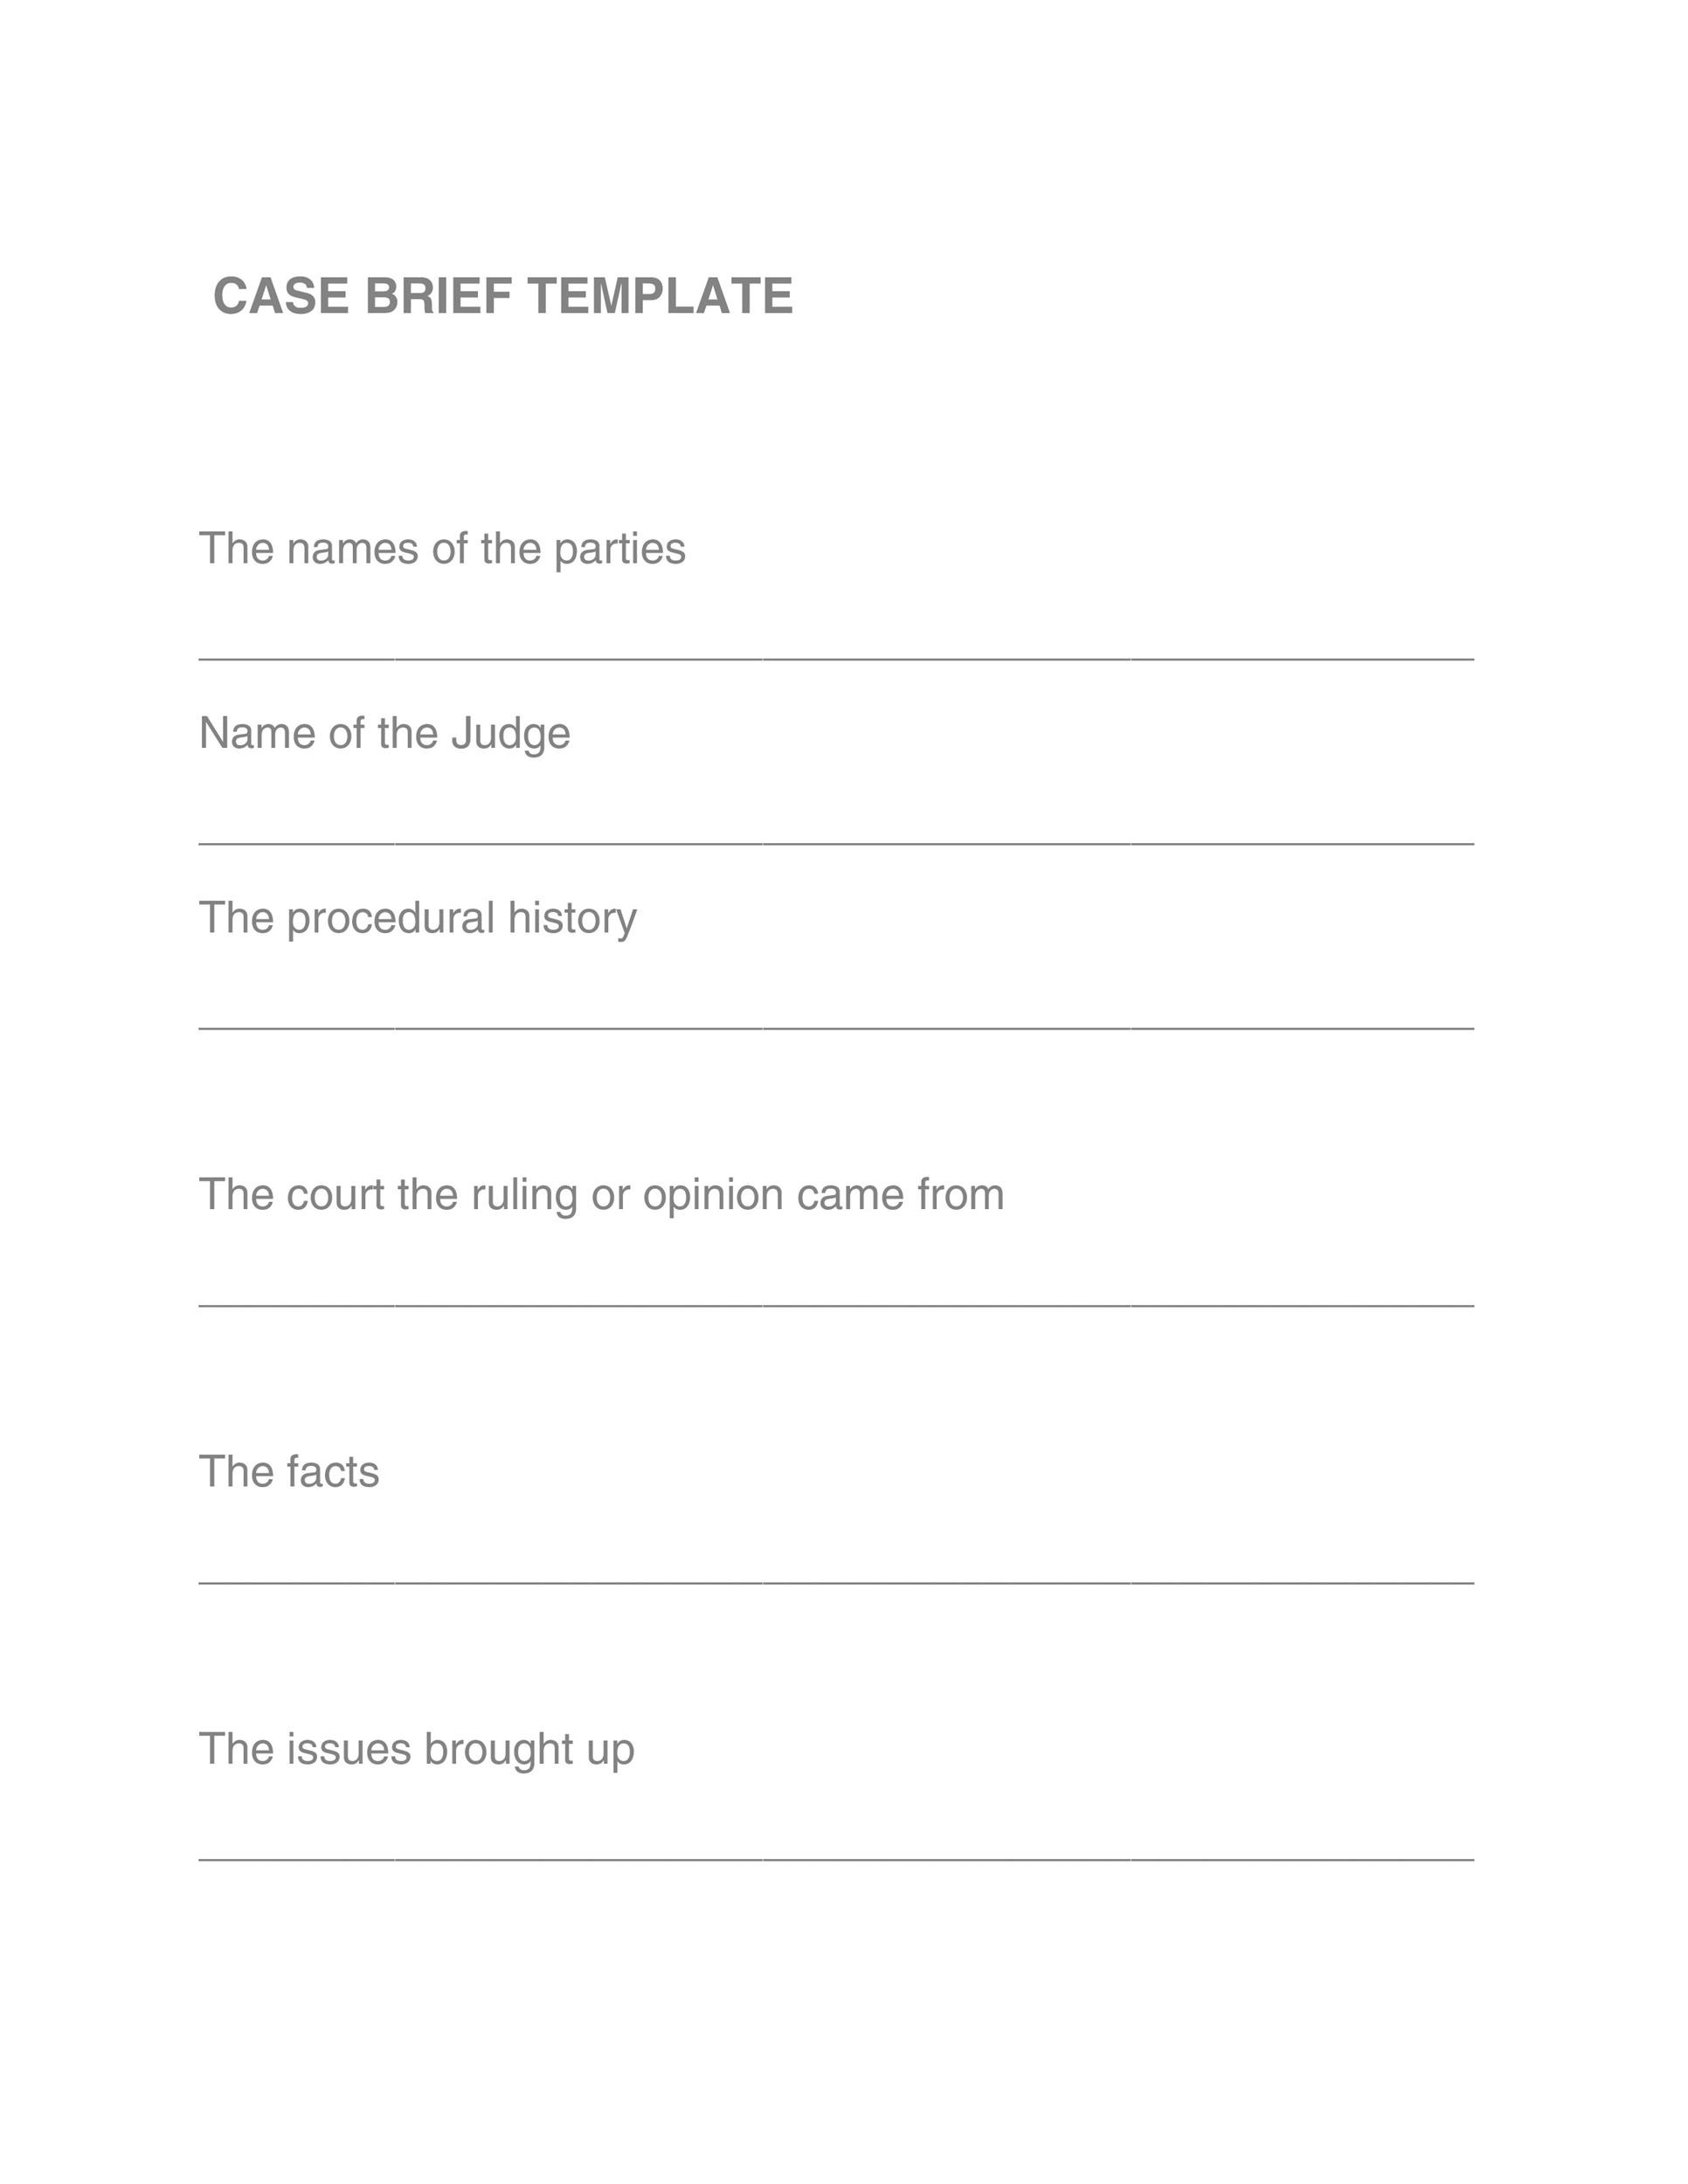 Free case brief template 13